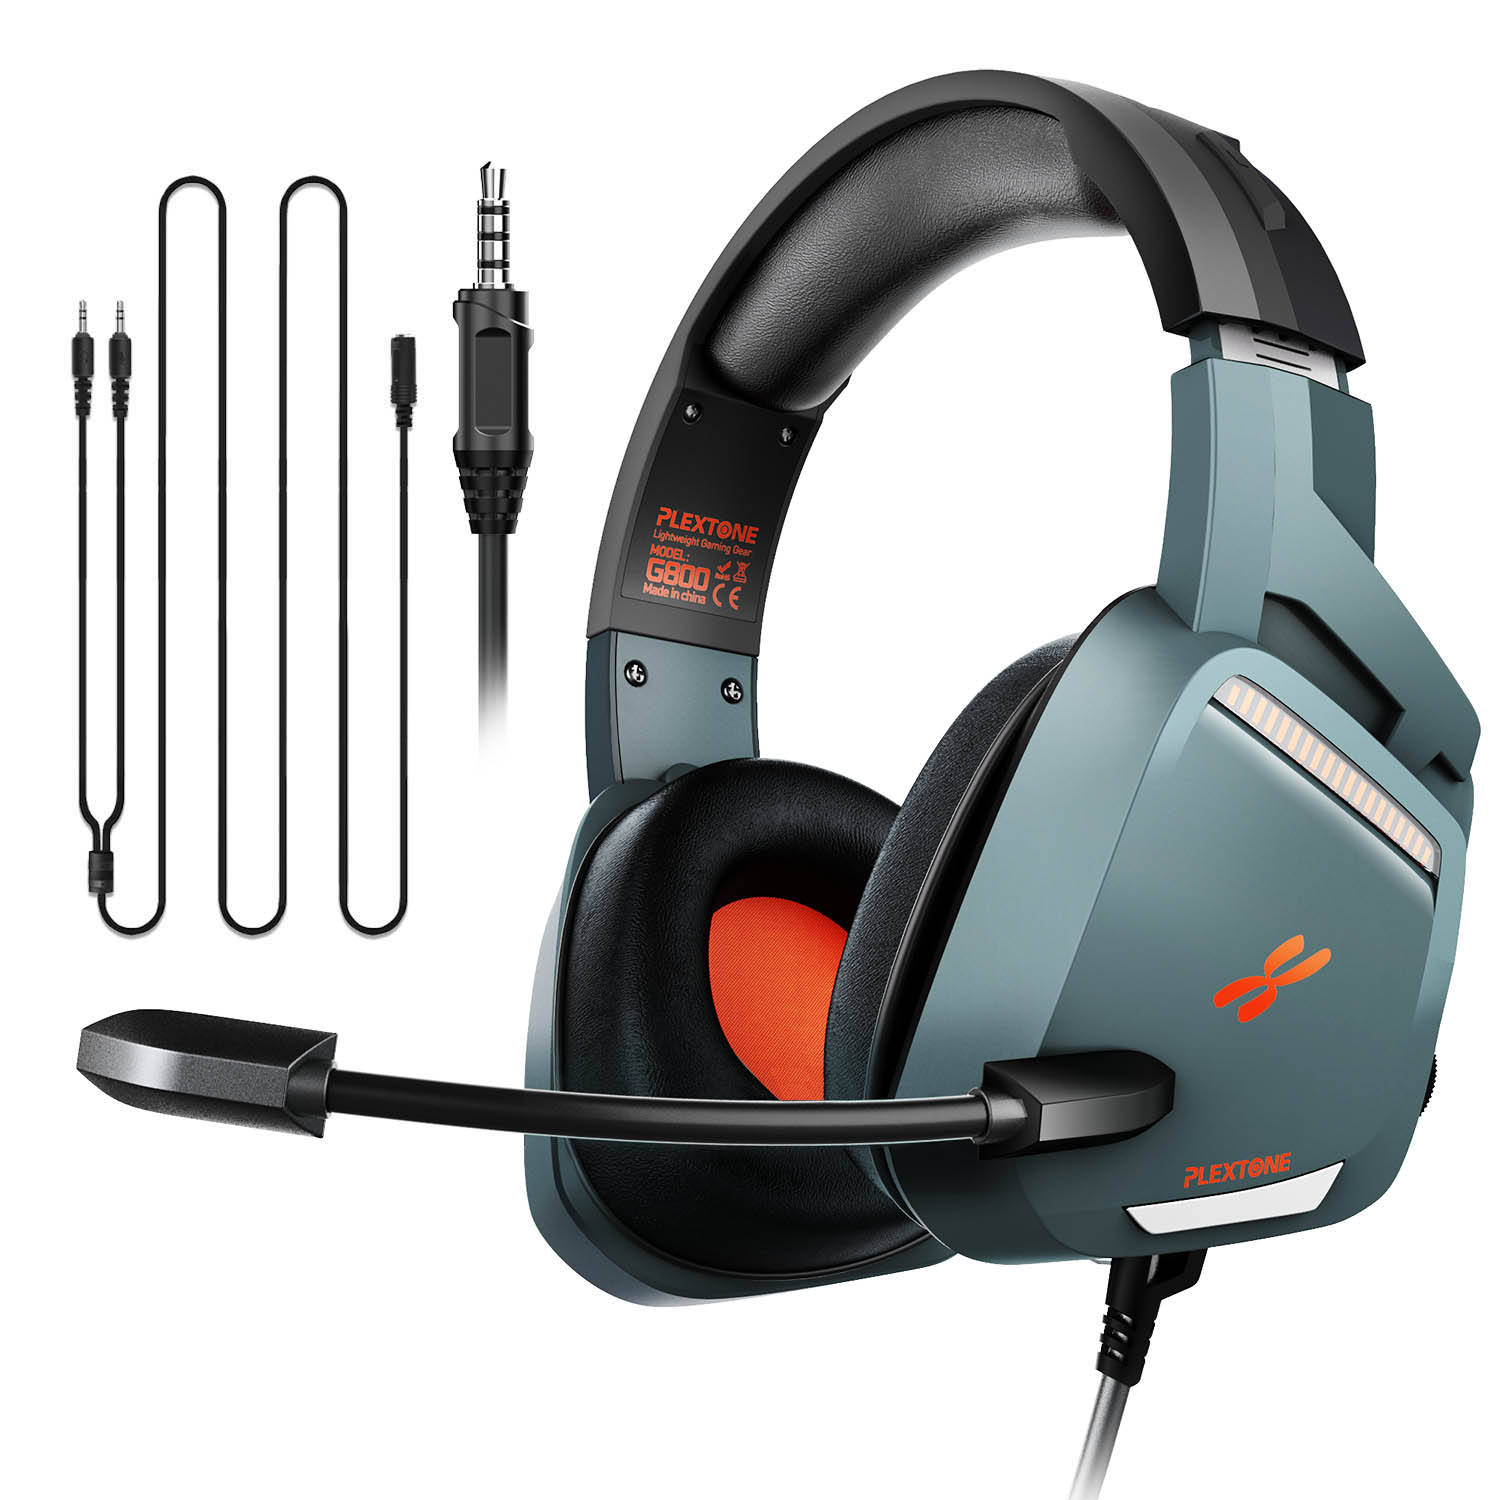 Low Price Noise Cancelling Wired Headset Stereo Gaming Headset For Sale